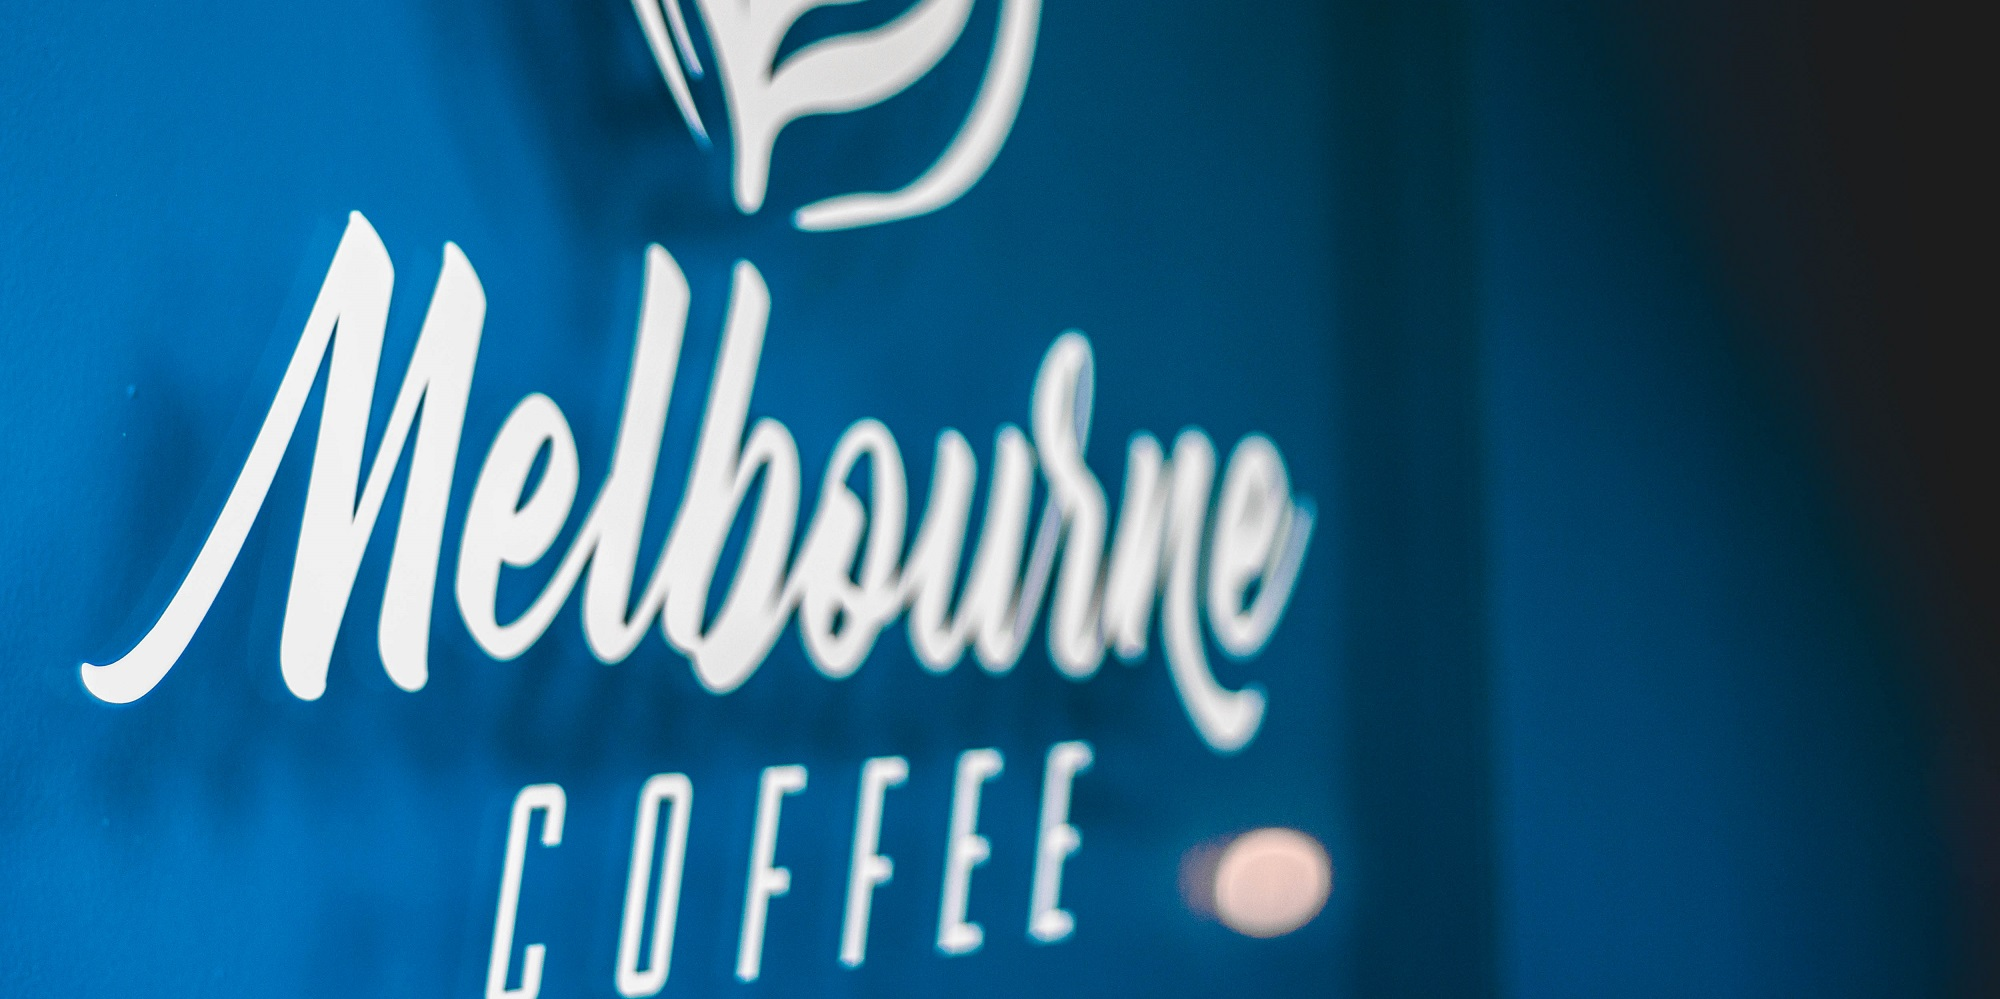 Brunch Melbourne Coffee (44000 Nantes)